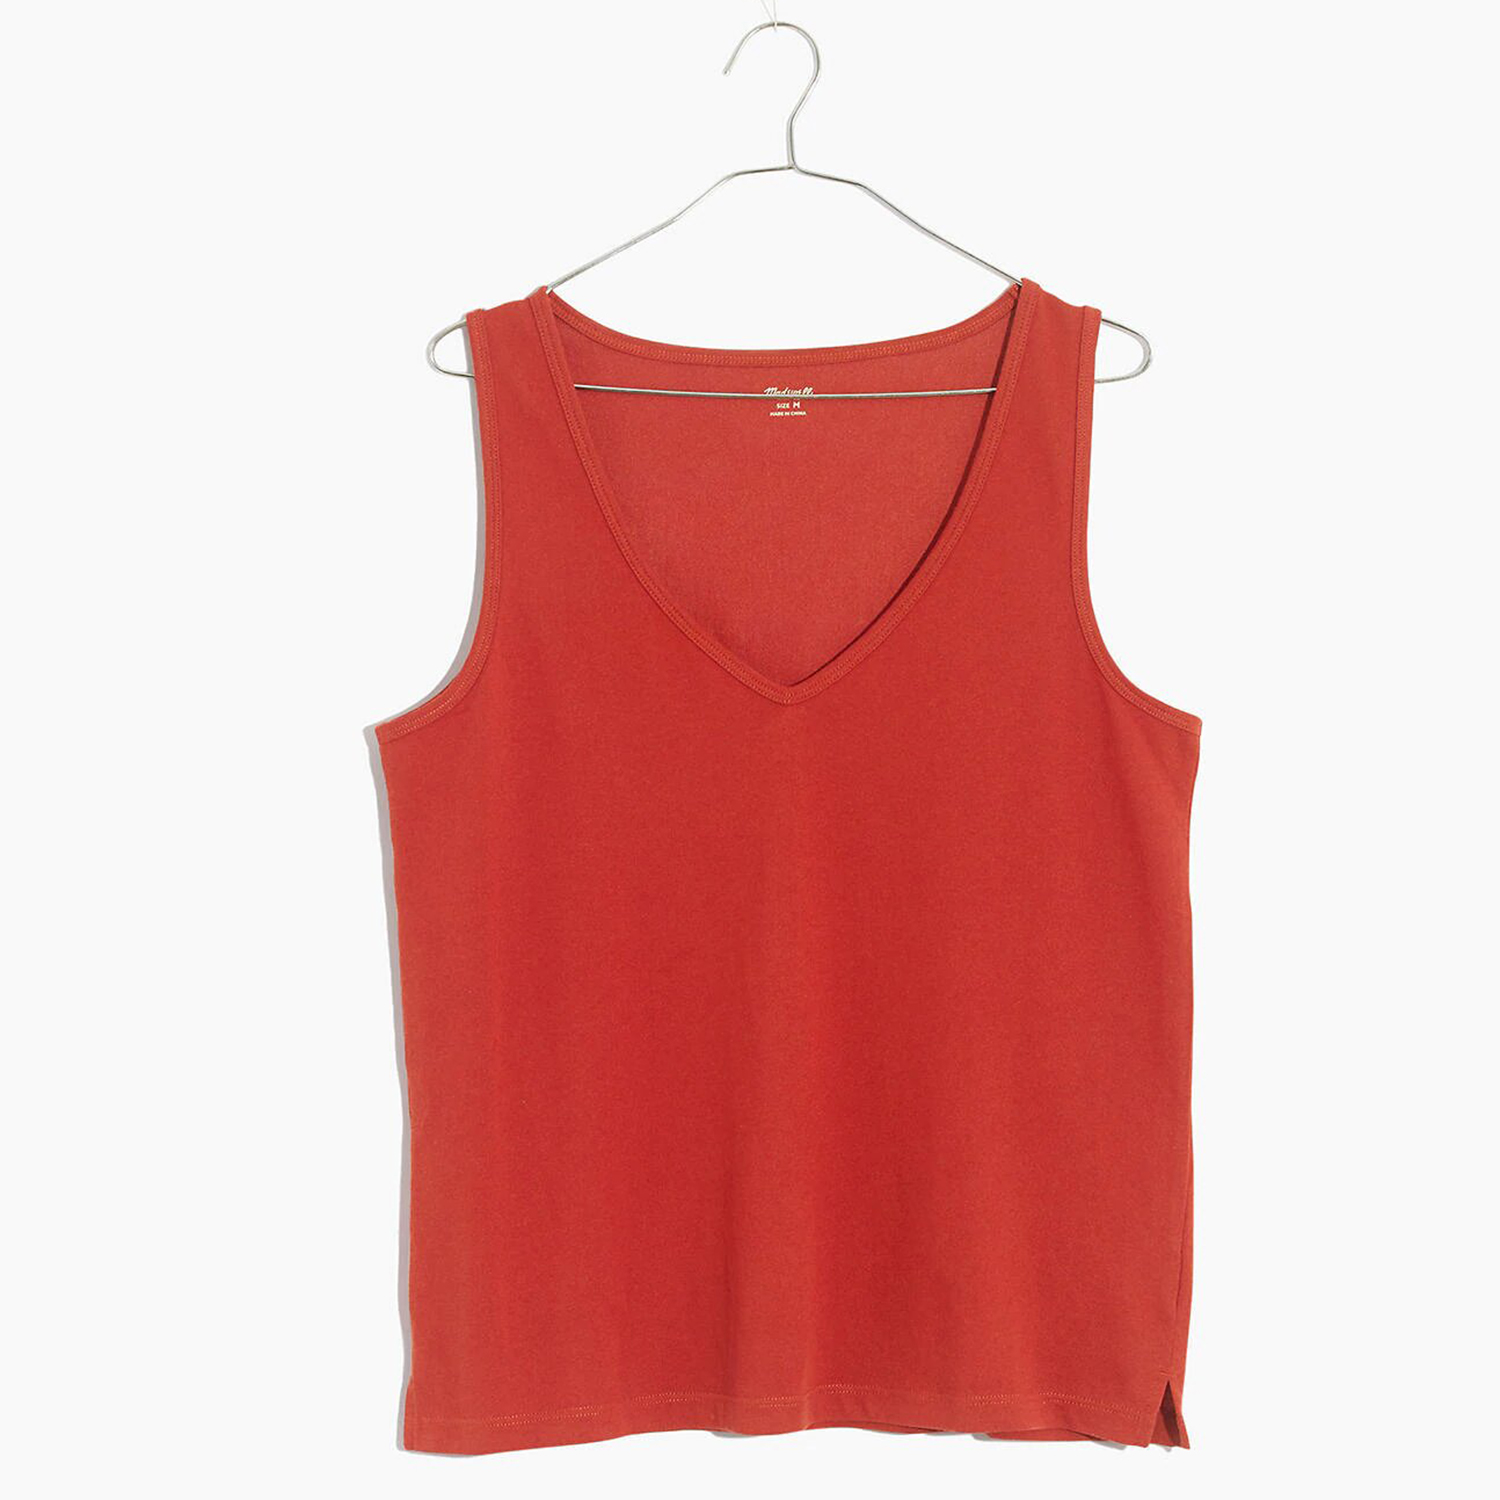 Madewell Basic Clothing